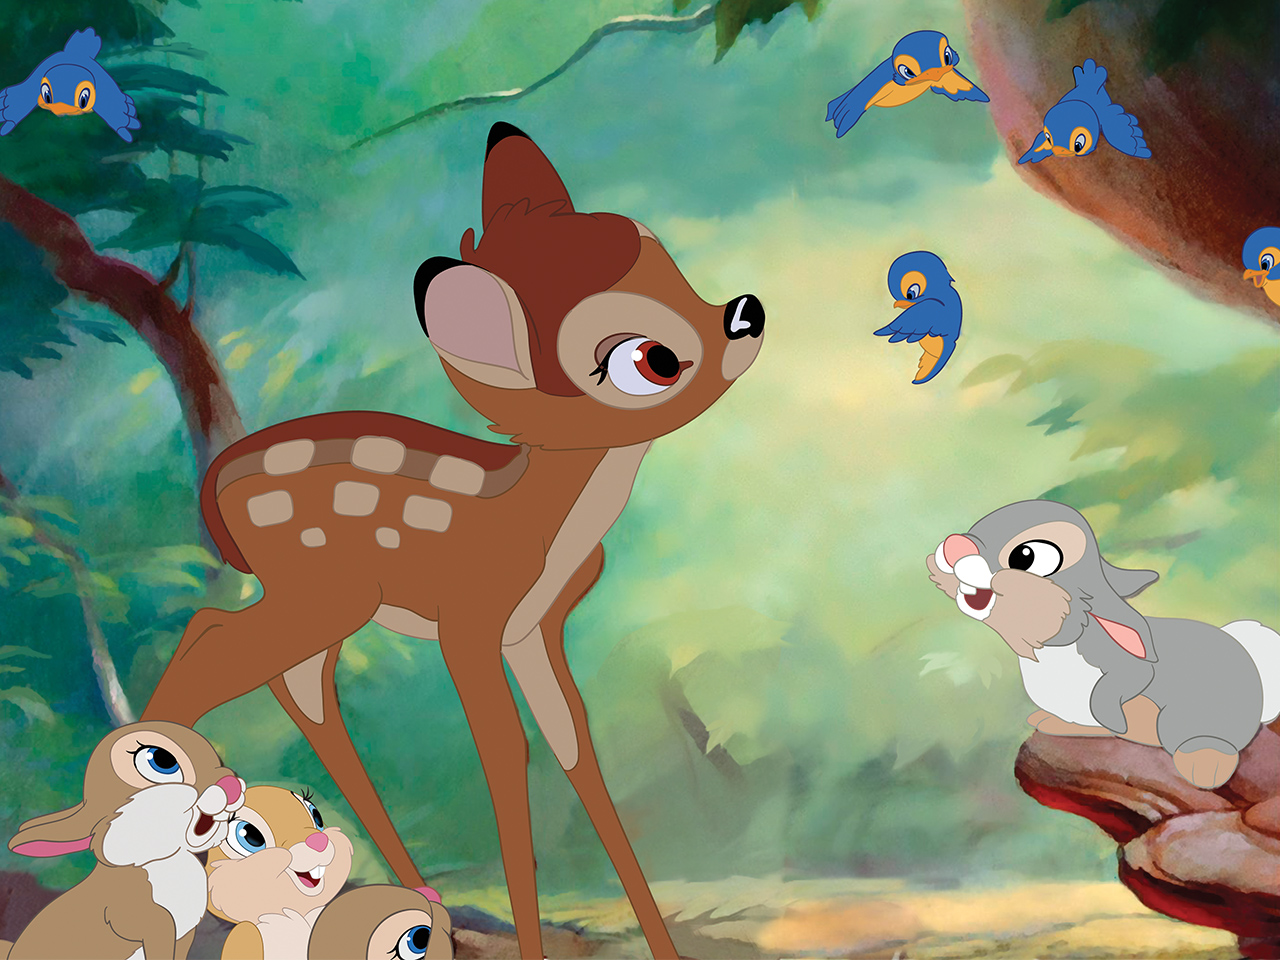 A still from the kids' animated movie Bambi